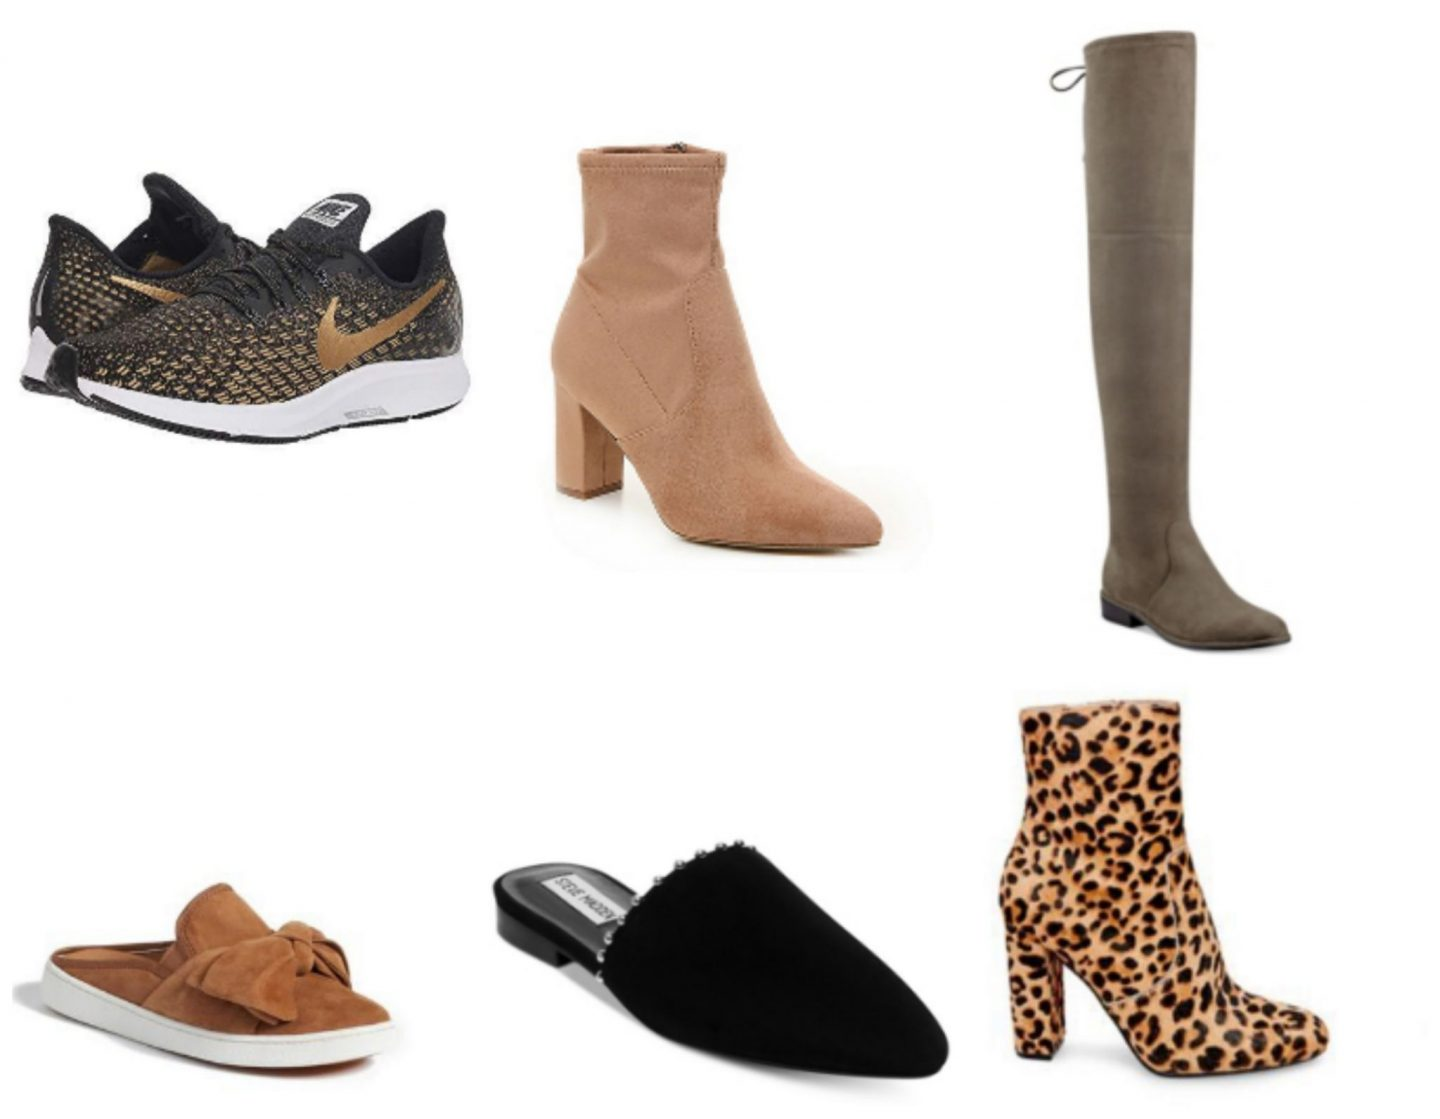 Tuesday's Cravings: Fall Shoes